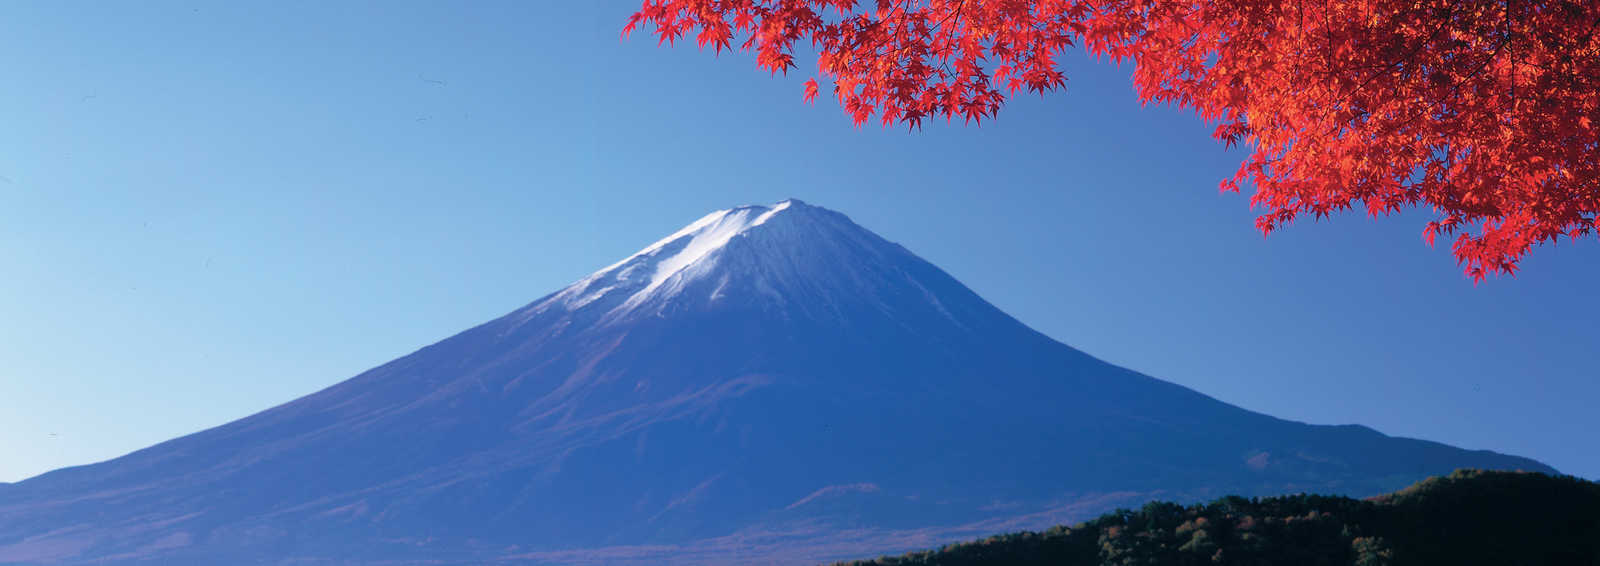 Japanese Maple and Mt Fuji